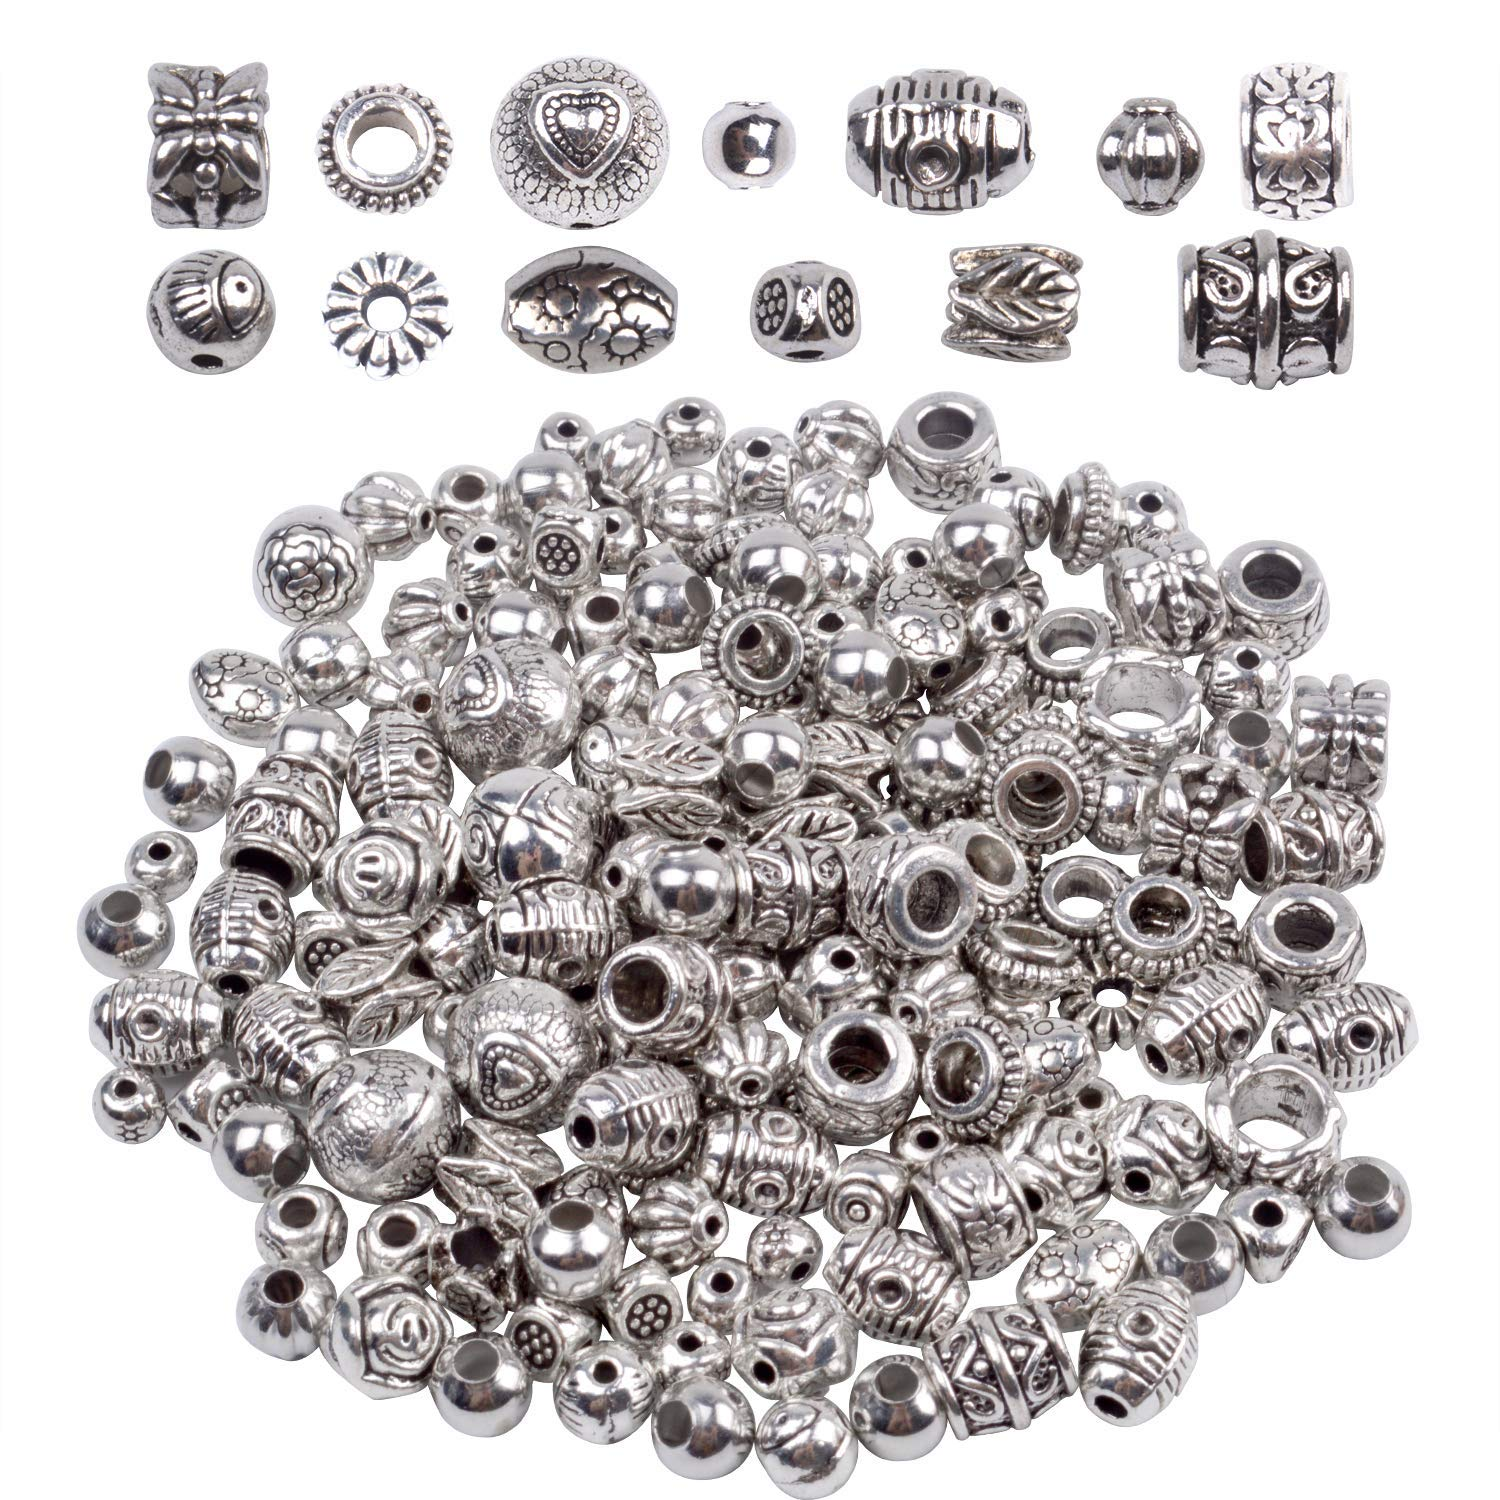 Antique Silver Round Beads Jewelry Bead Charm Spacers for Jewelry Making Bracelets Necklace About 140-180pcs BronaGrand 100g